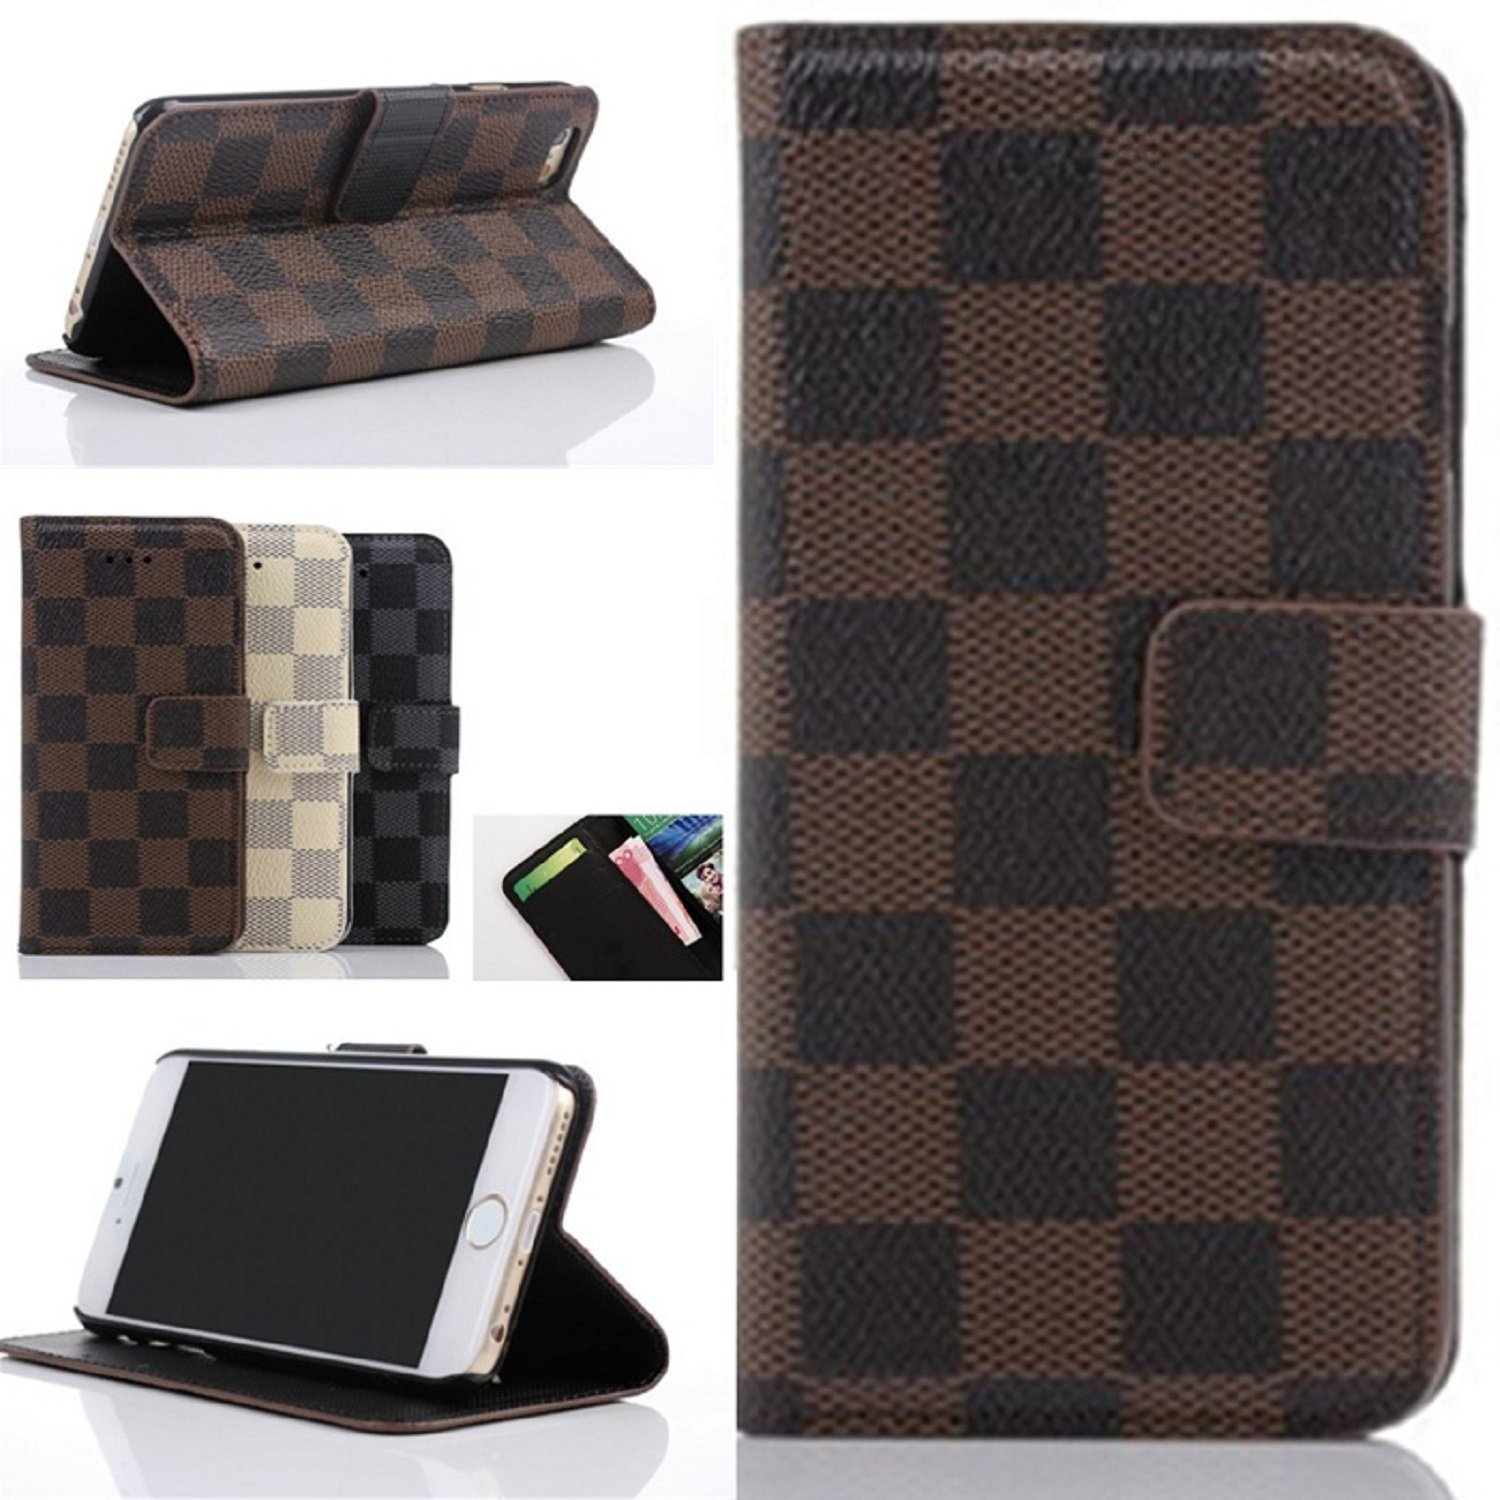 big sale 9e215 02183 Amazon.com: Iphone 6 Case, Hd LCD Screen Protector, Kit Pack Set Bundle - 1  Leather Fashion Designer Wallet Flip Cover Skin Case Stand and 1 Crystal ...